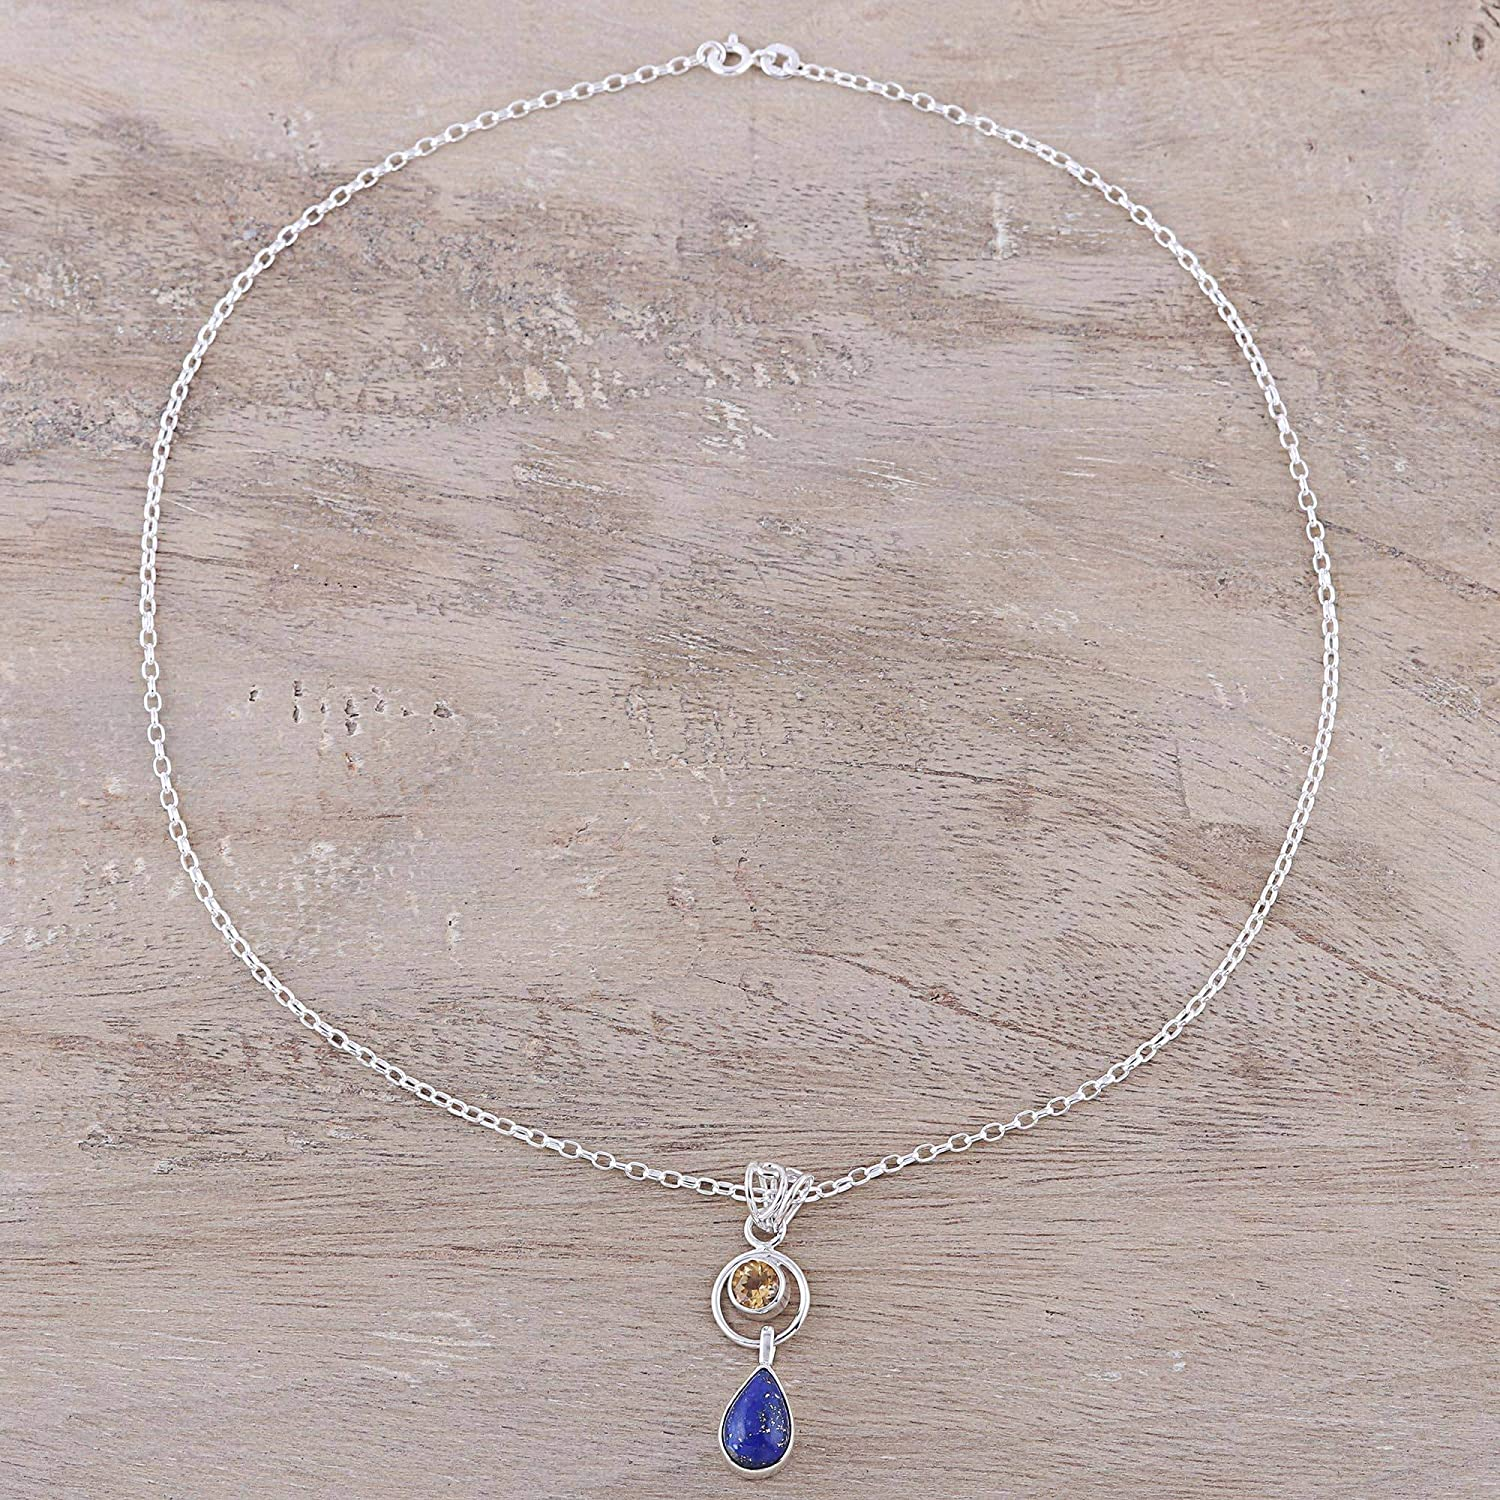 18 NOVICA Multi-Gem Lapis Lazuli .925 Sterling Silver Pendant Necklace Gleaming Midnight